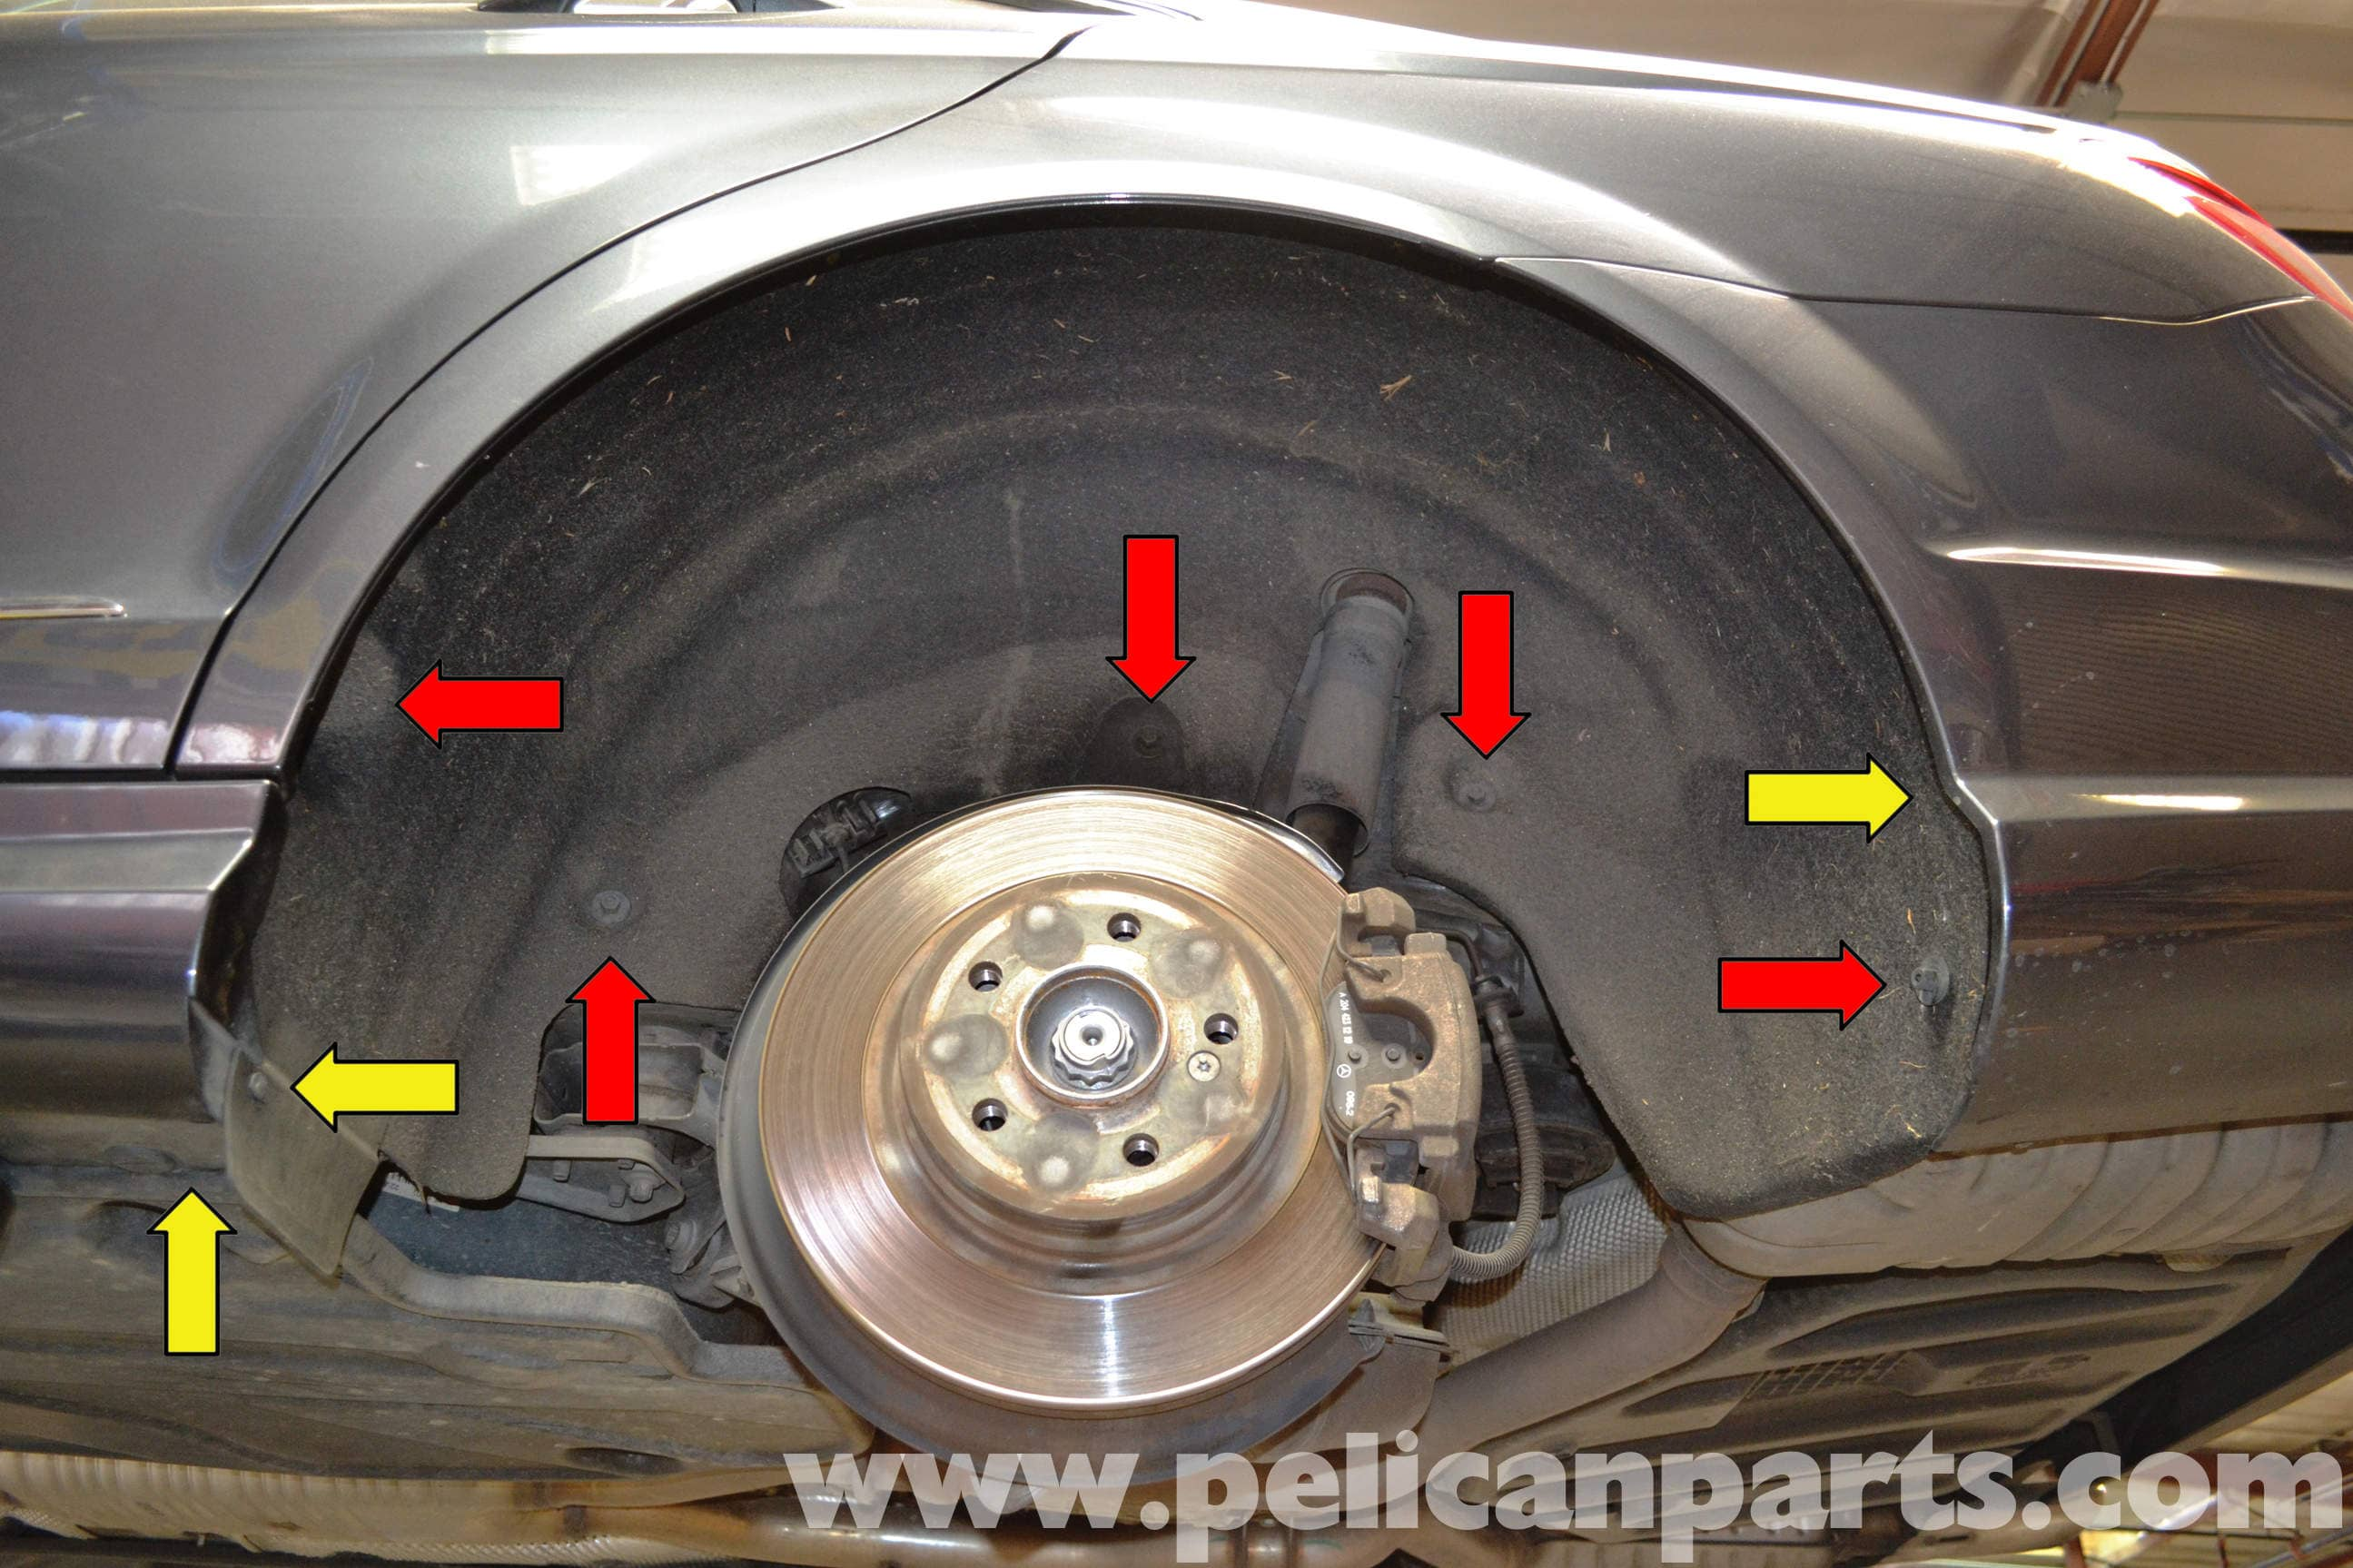 Mercedes Benz W204 Wheel Well Liner Removal 2008 2014 C250 C300 Fuse Box Diagram Large Image Extra